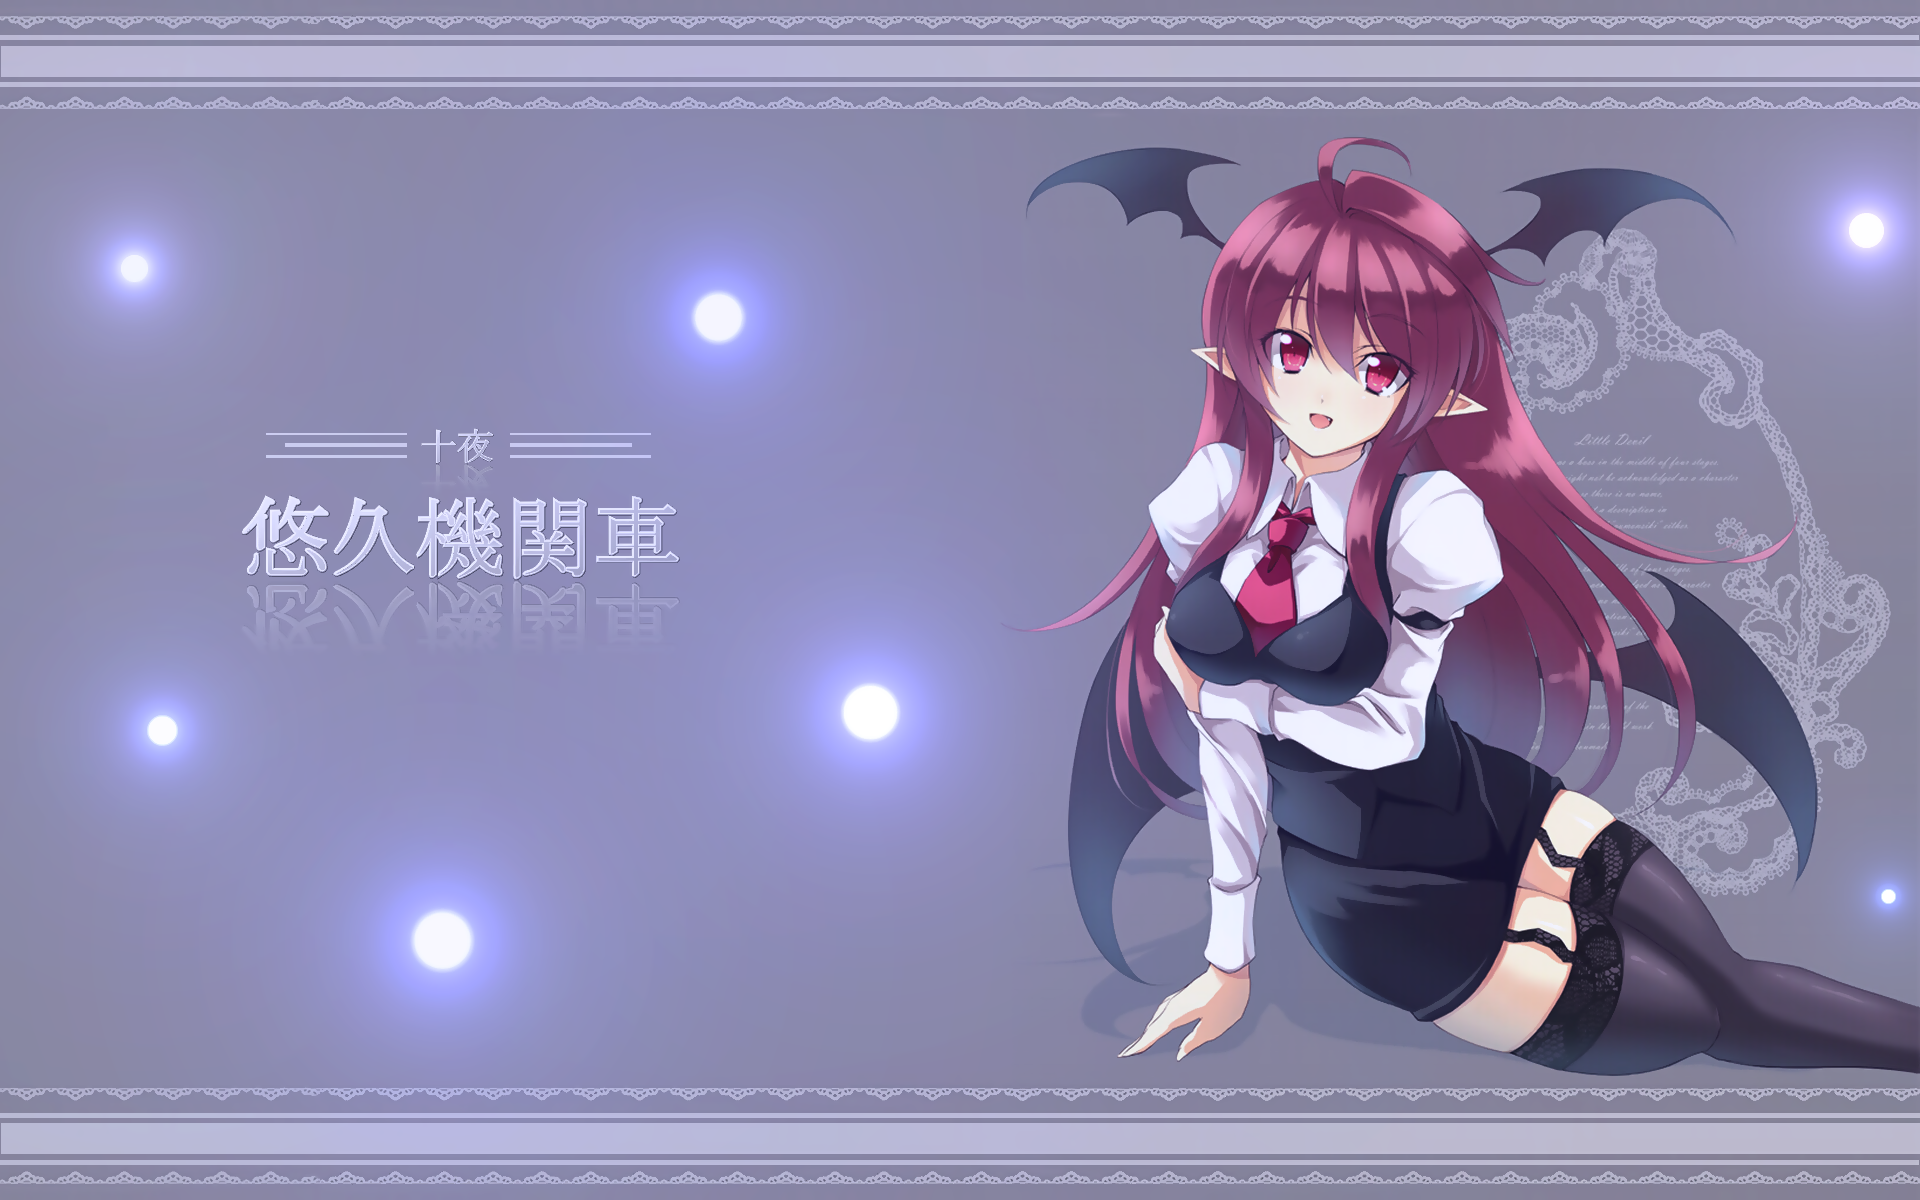 succubus backgrounds and images - photo #25